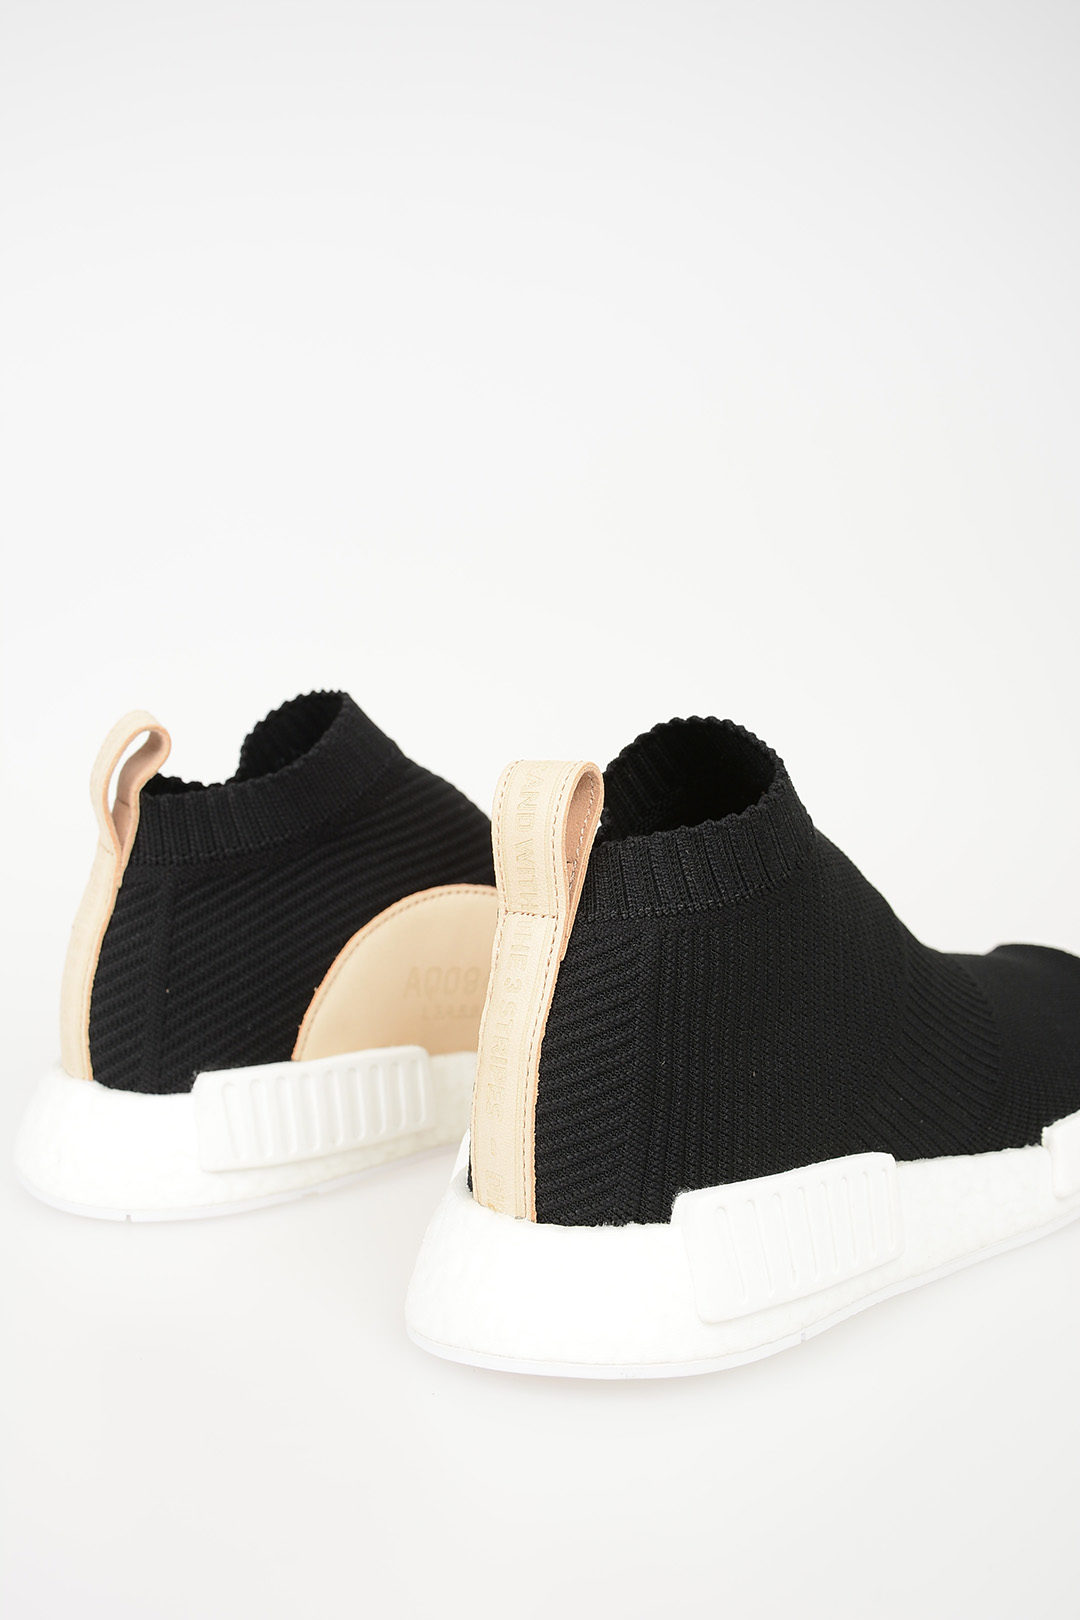 Adidas Fabric NMD_CS1 PK Sneakers herren Glamood Outlet